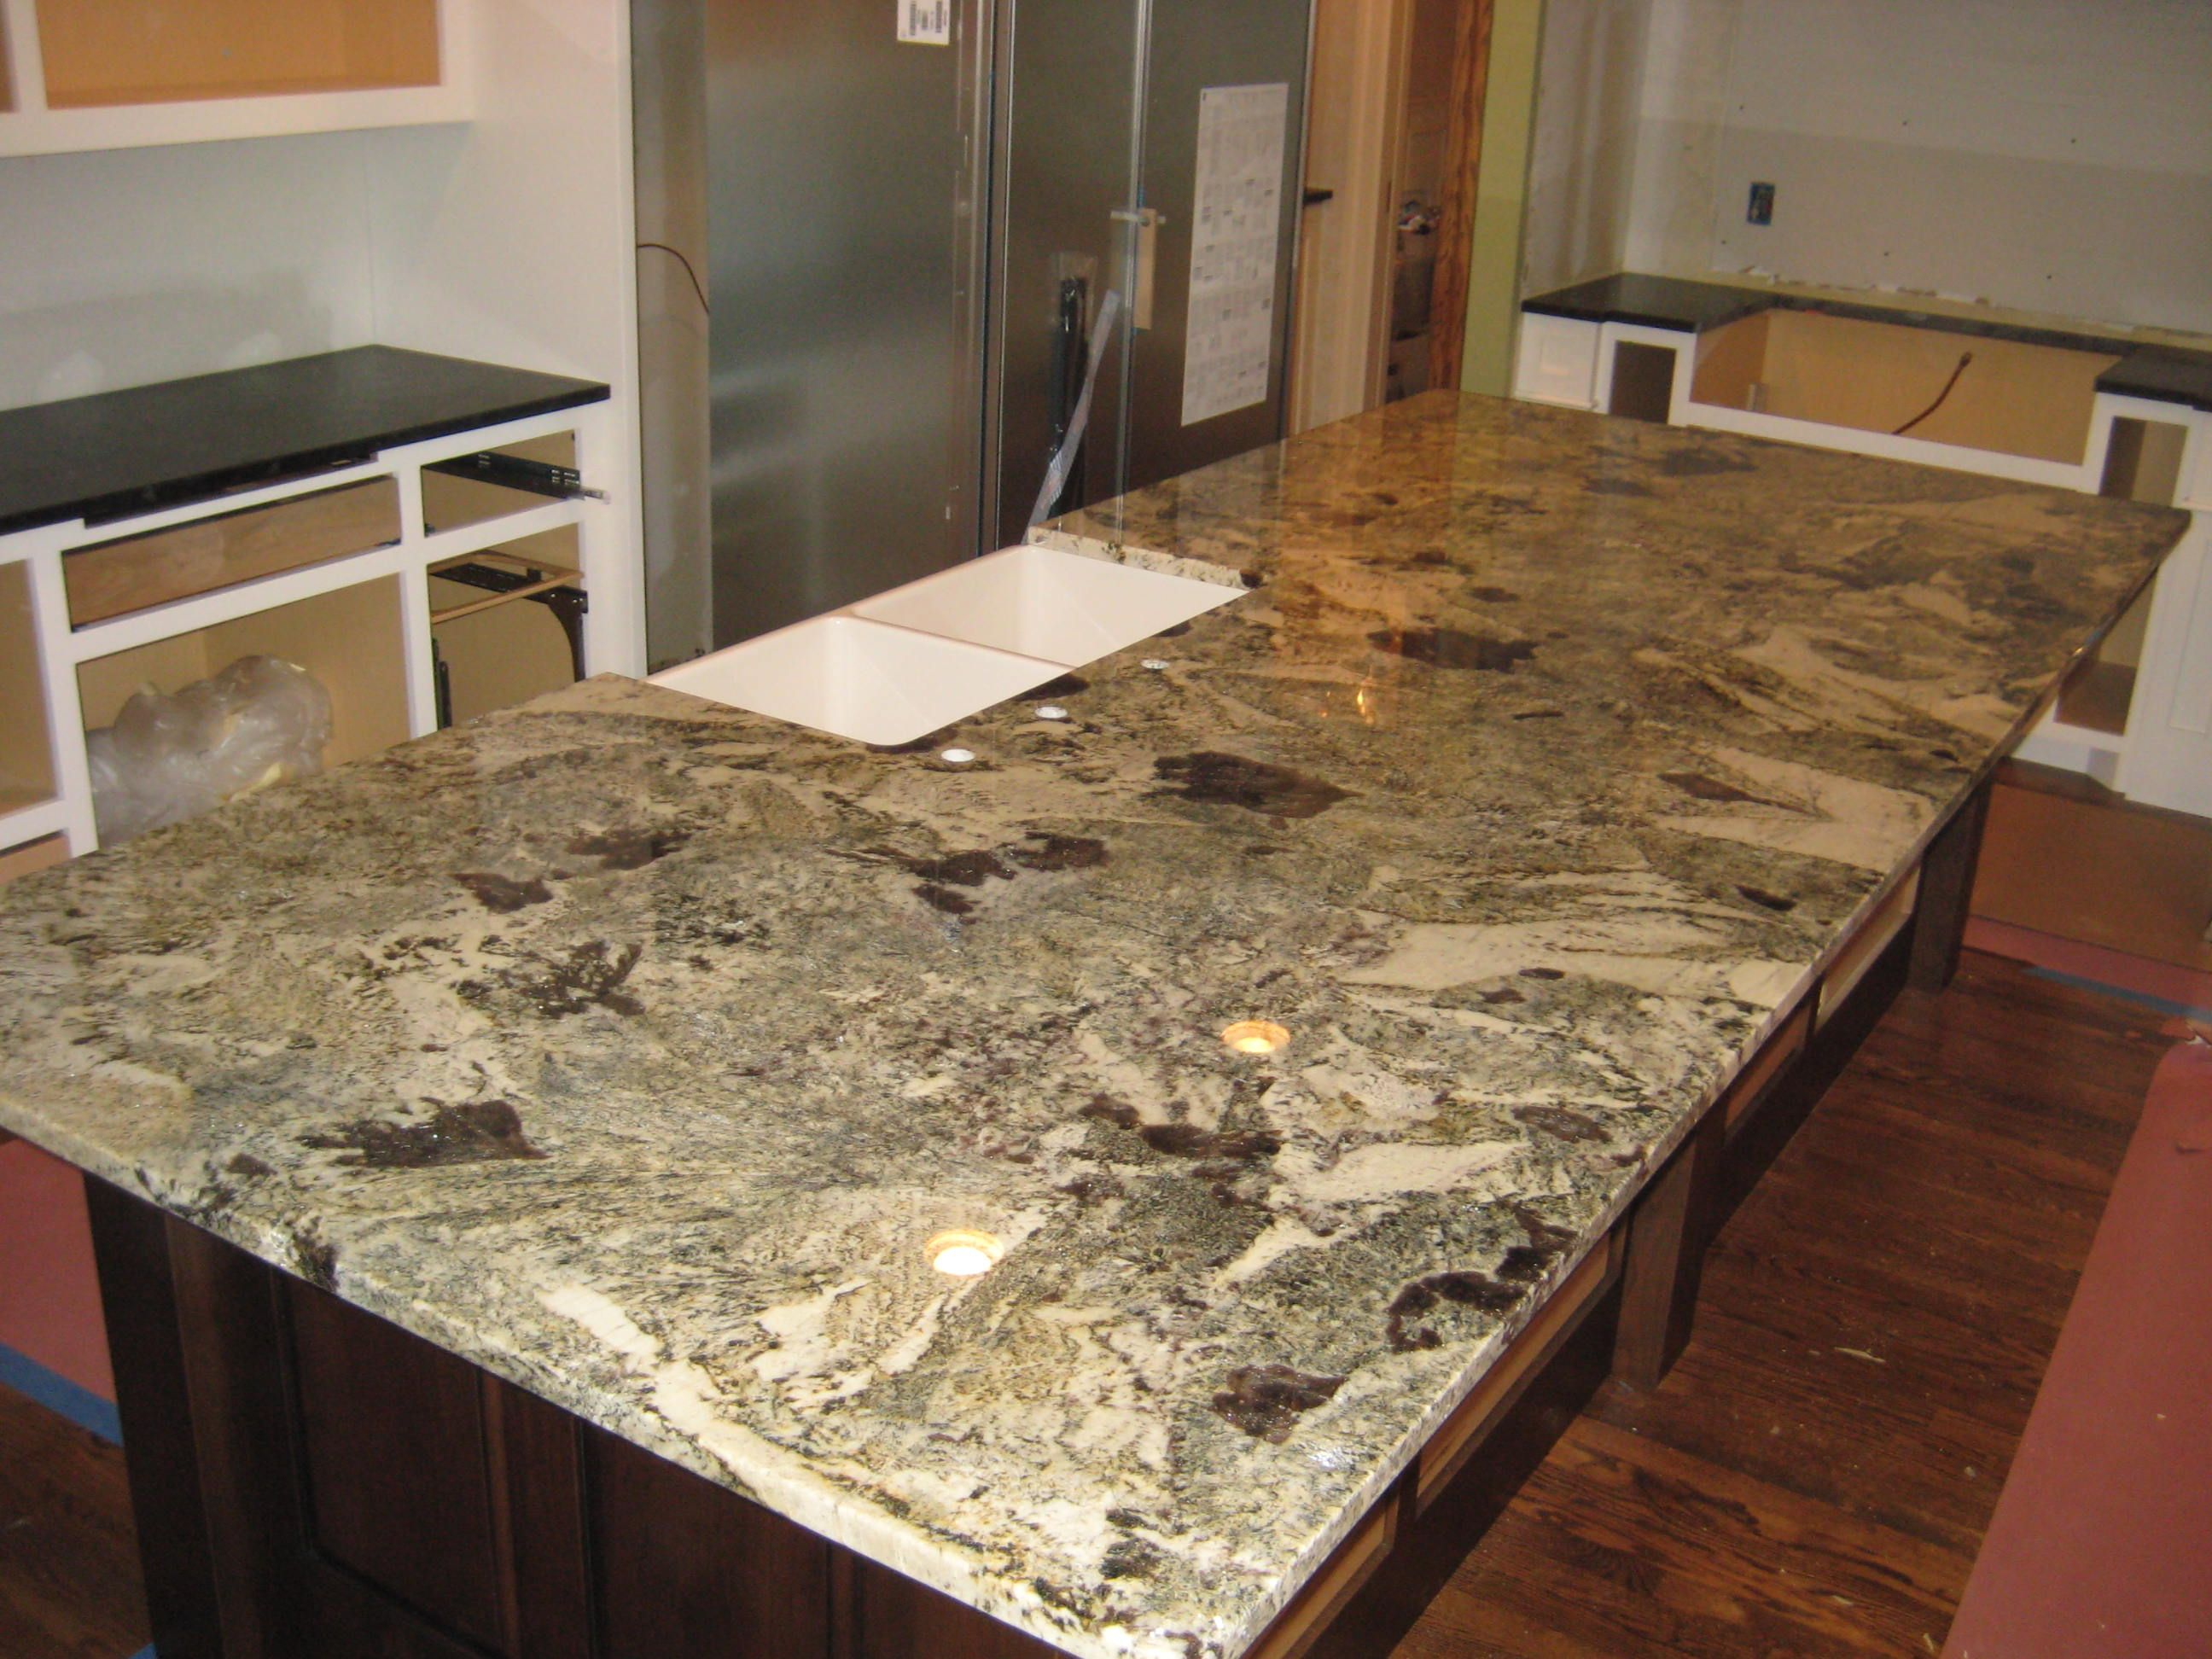 Chipped Quartz Countertop Repair Crazy Horse Granite Countertops Pinterest